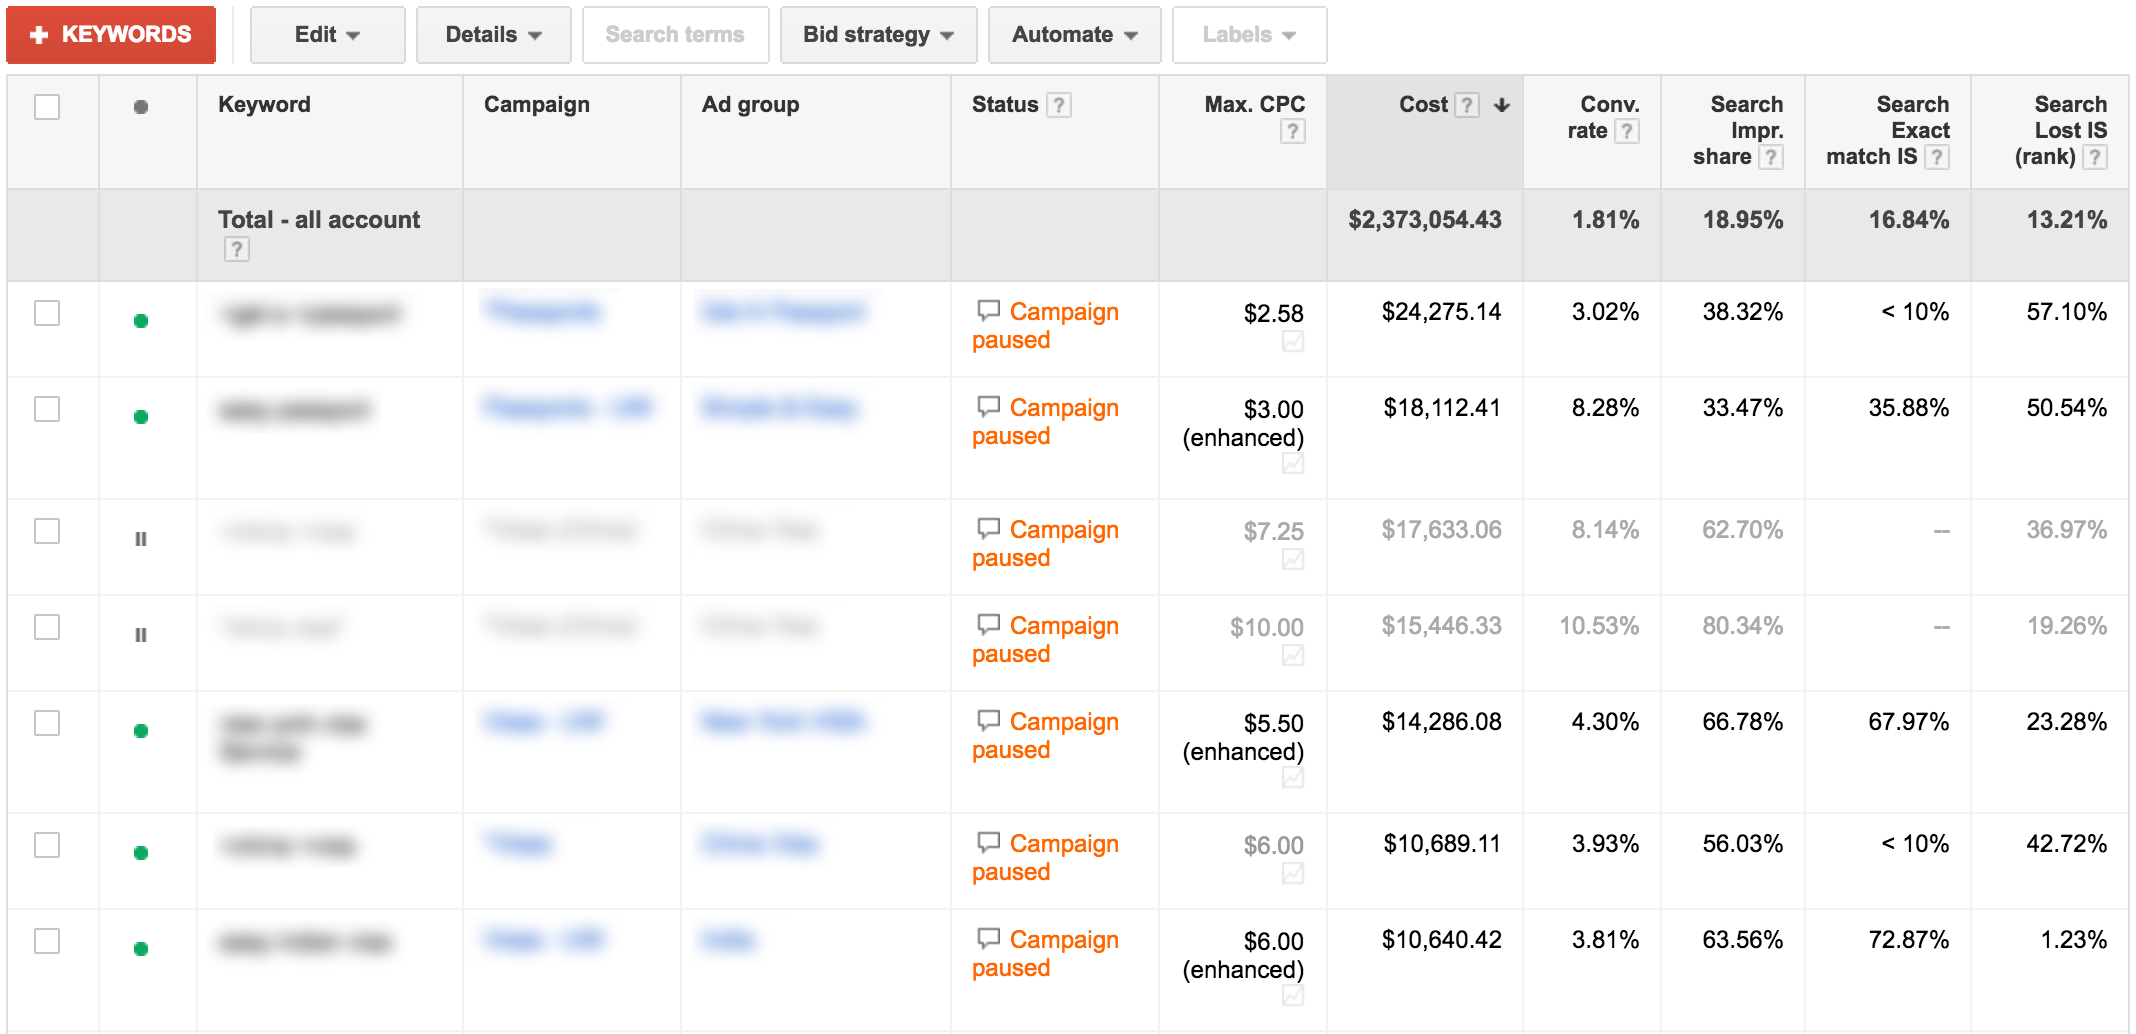 impression share results on Google Adwords